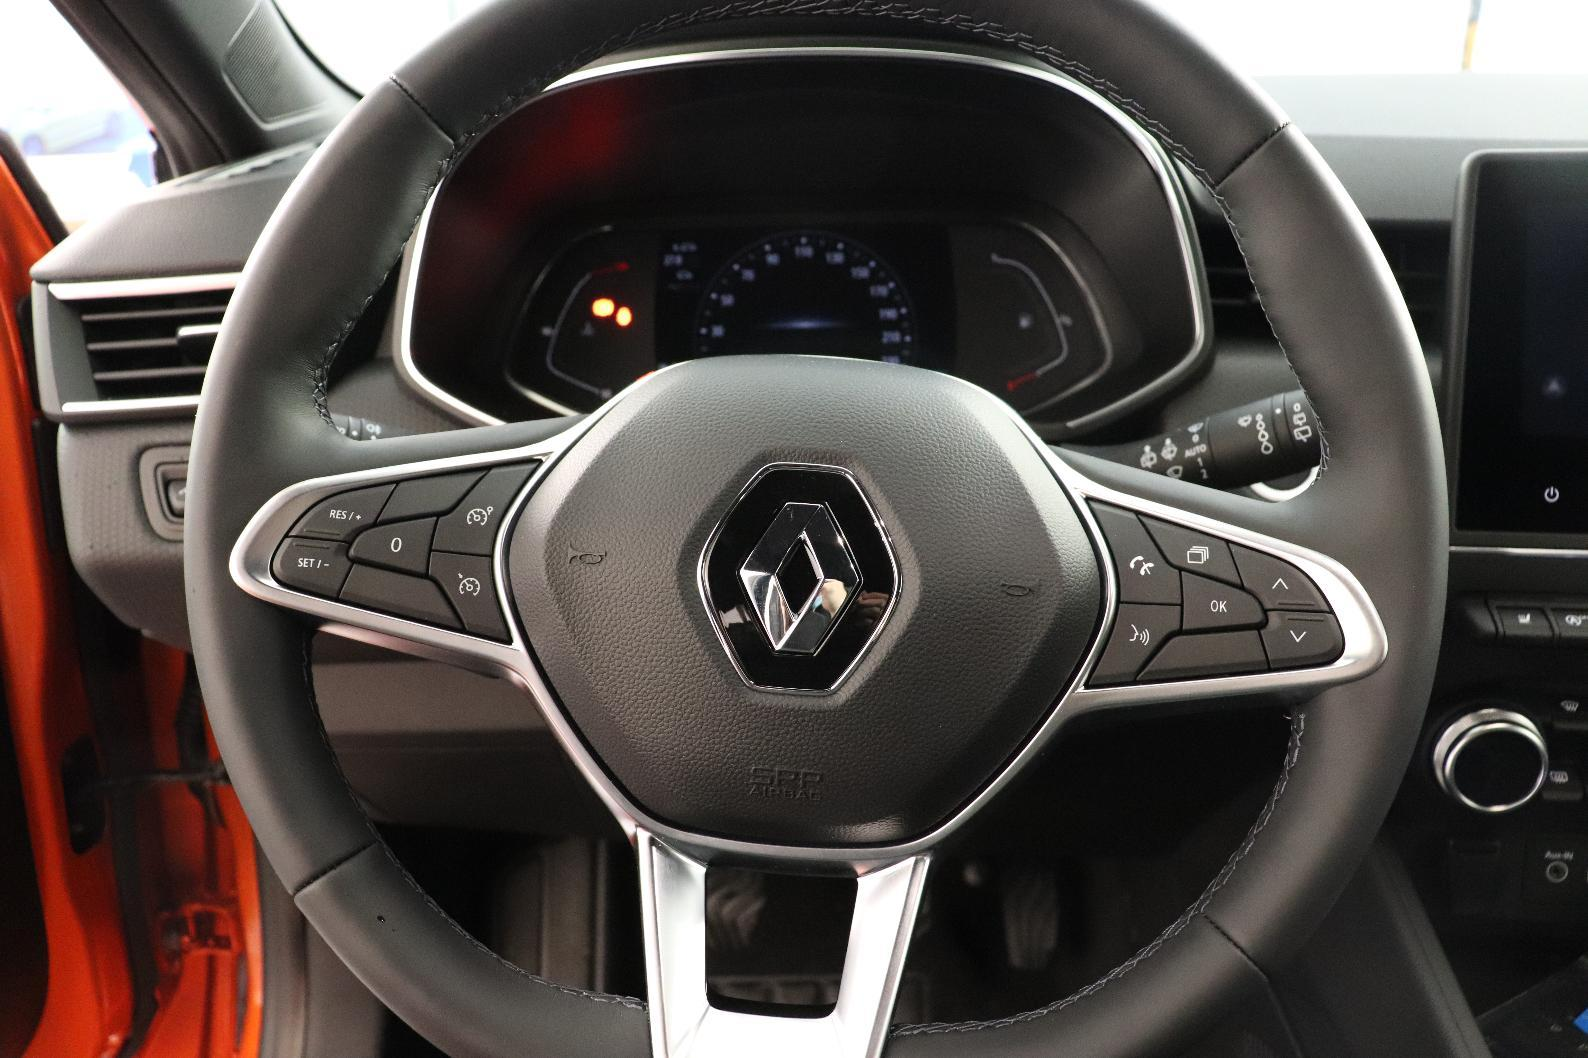 RENAULT CLIO V 1.0 TCE 100CH EDITION ONE